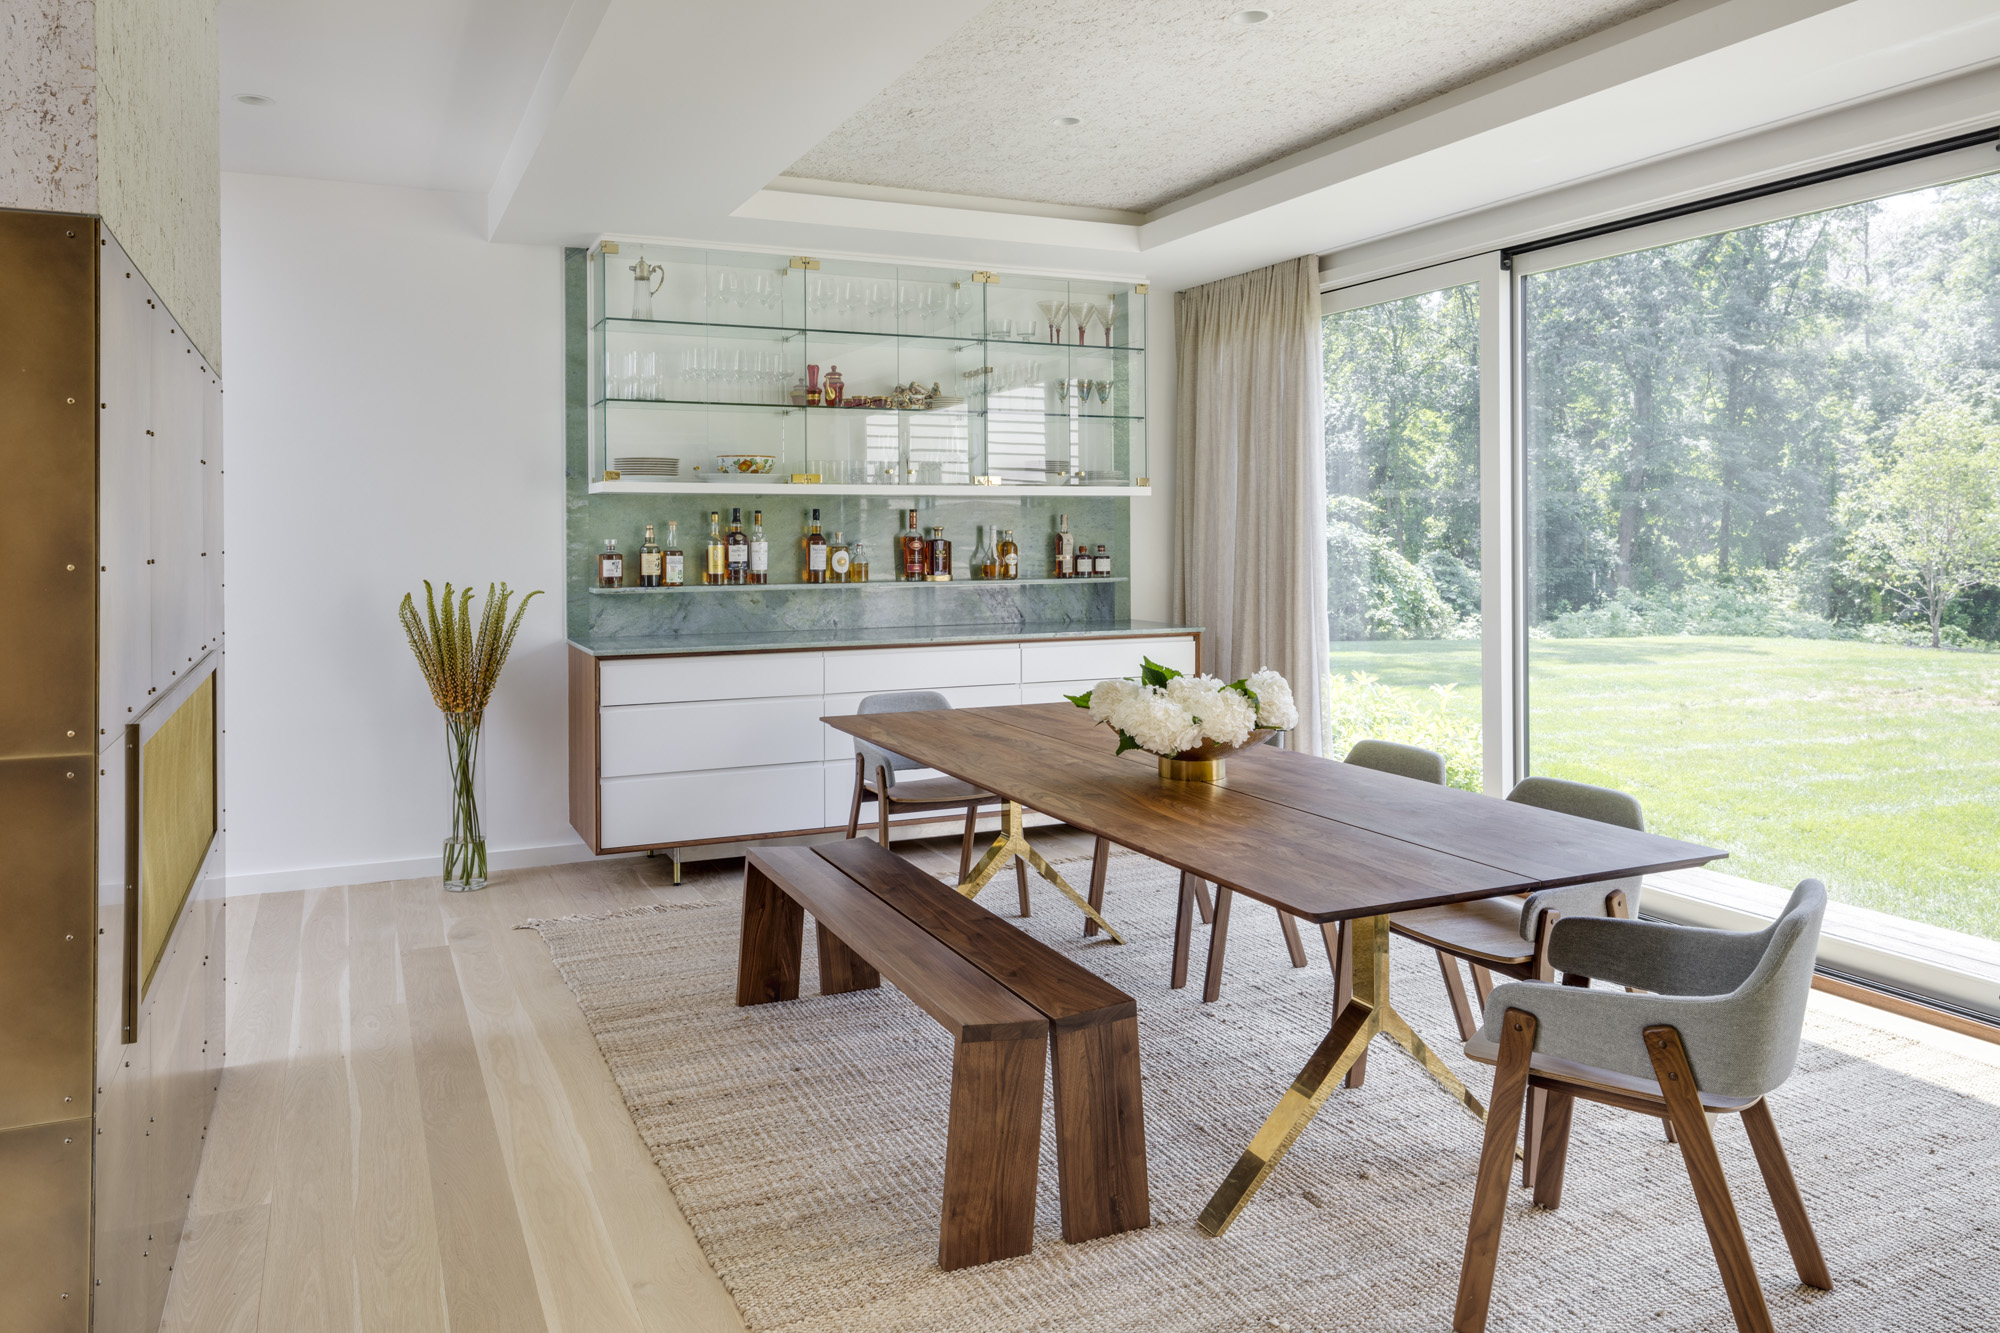 A walnut dining table from DDCNYC, along with a long bench and set of chairs from Blu Dot, lay the foundation for a rustic minimalist aesthetic in the dining room. Above the table, the ceiling is covered in a texturedOmexcowallcovering fromRomo, and behind the bar, a chic, reflective backsplash fromAthena Marble and Granite offers a hint of gloss.